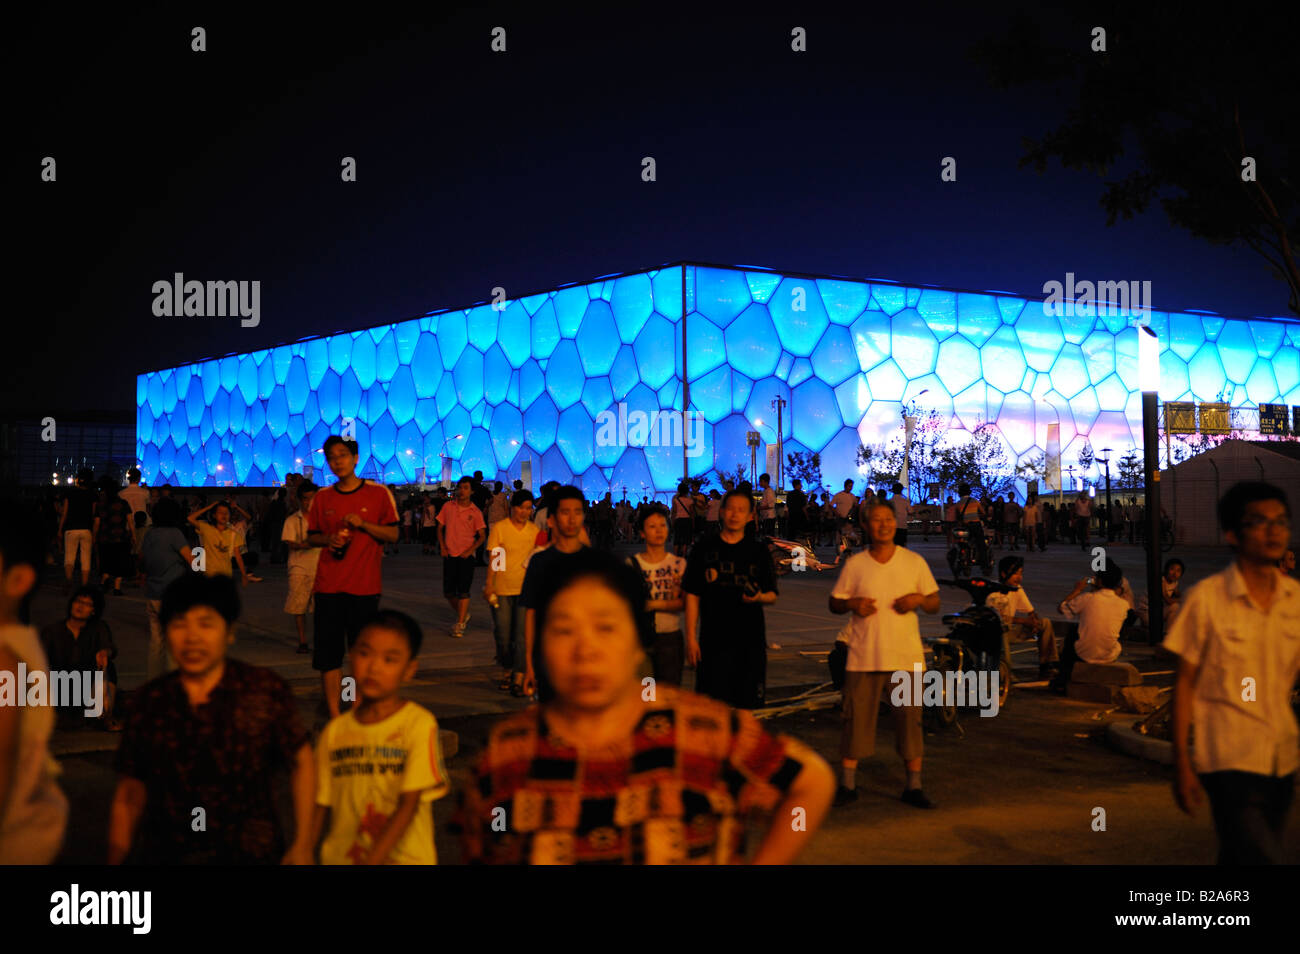 National Aquatics Center for the Beijing 2008 Olympic Games. 22-Jul-2008 - Stock Image